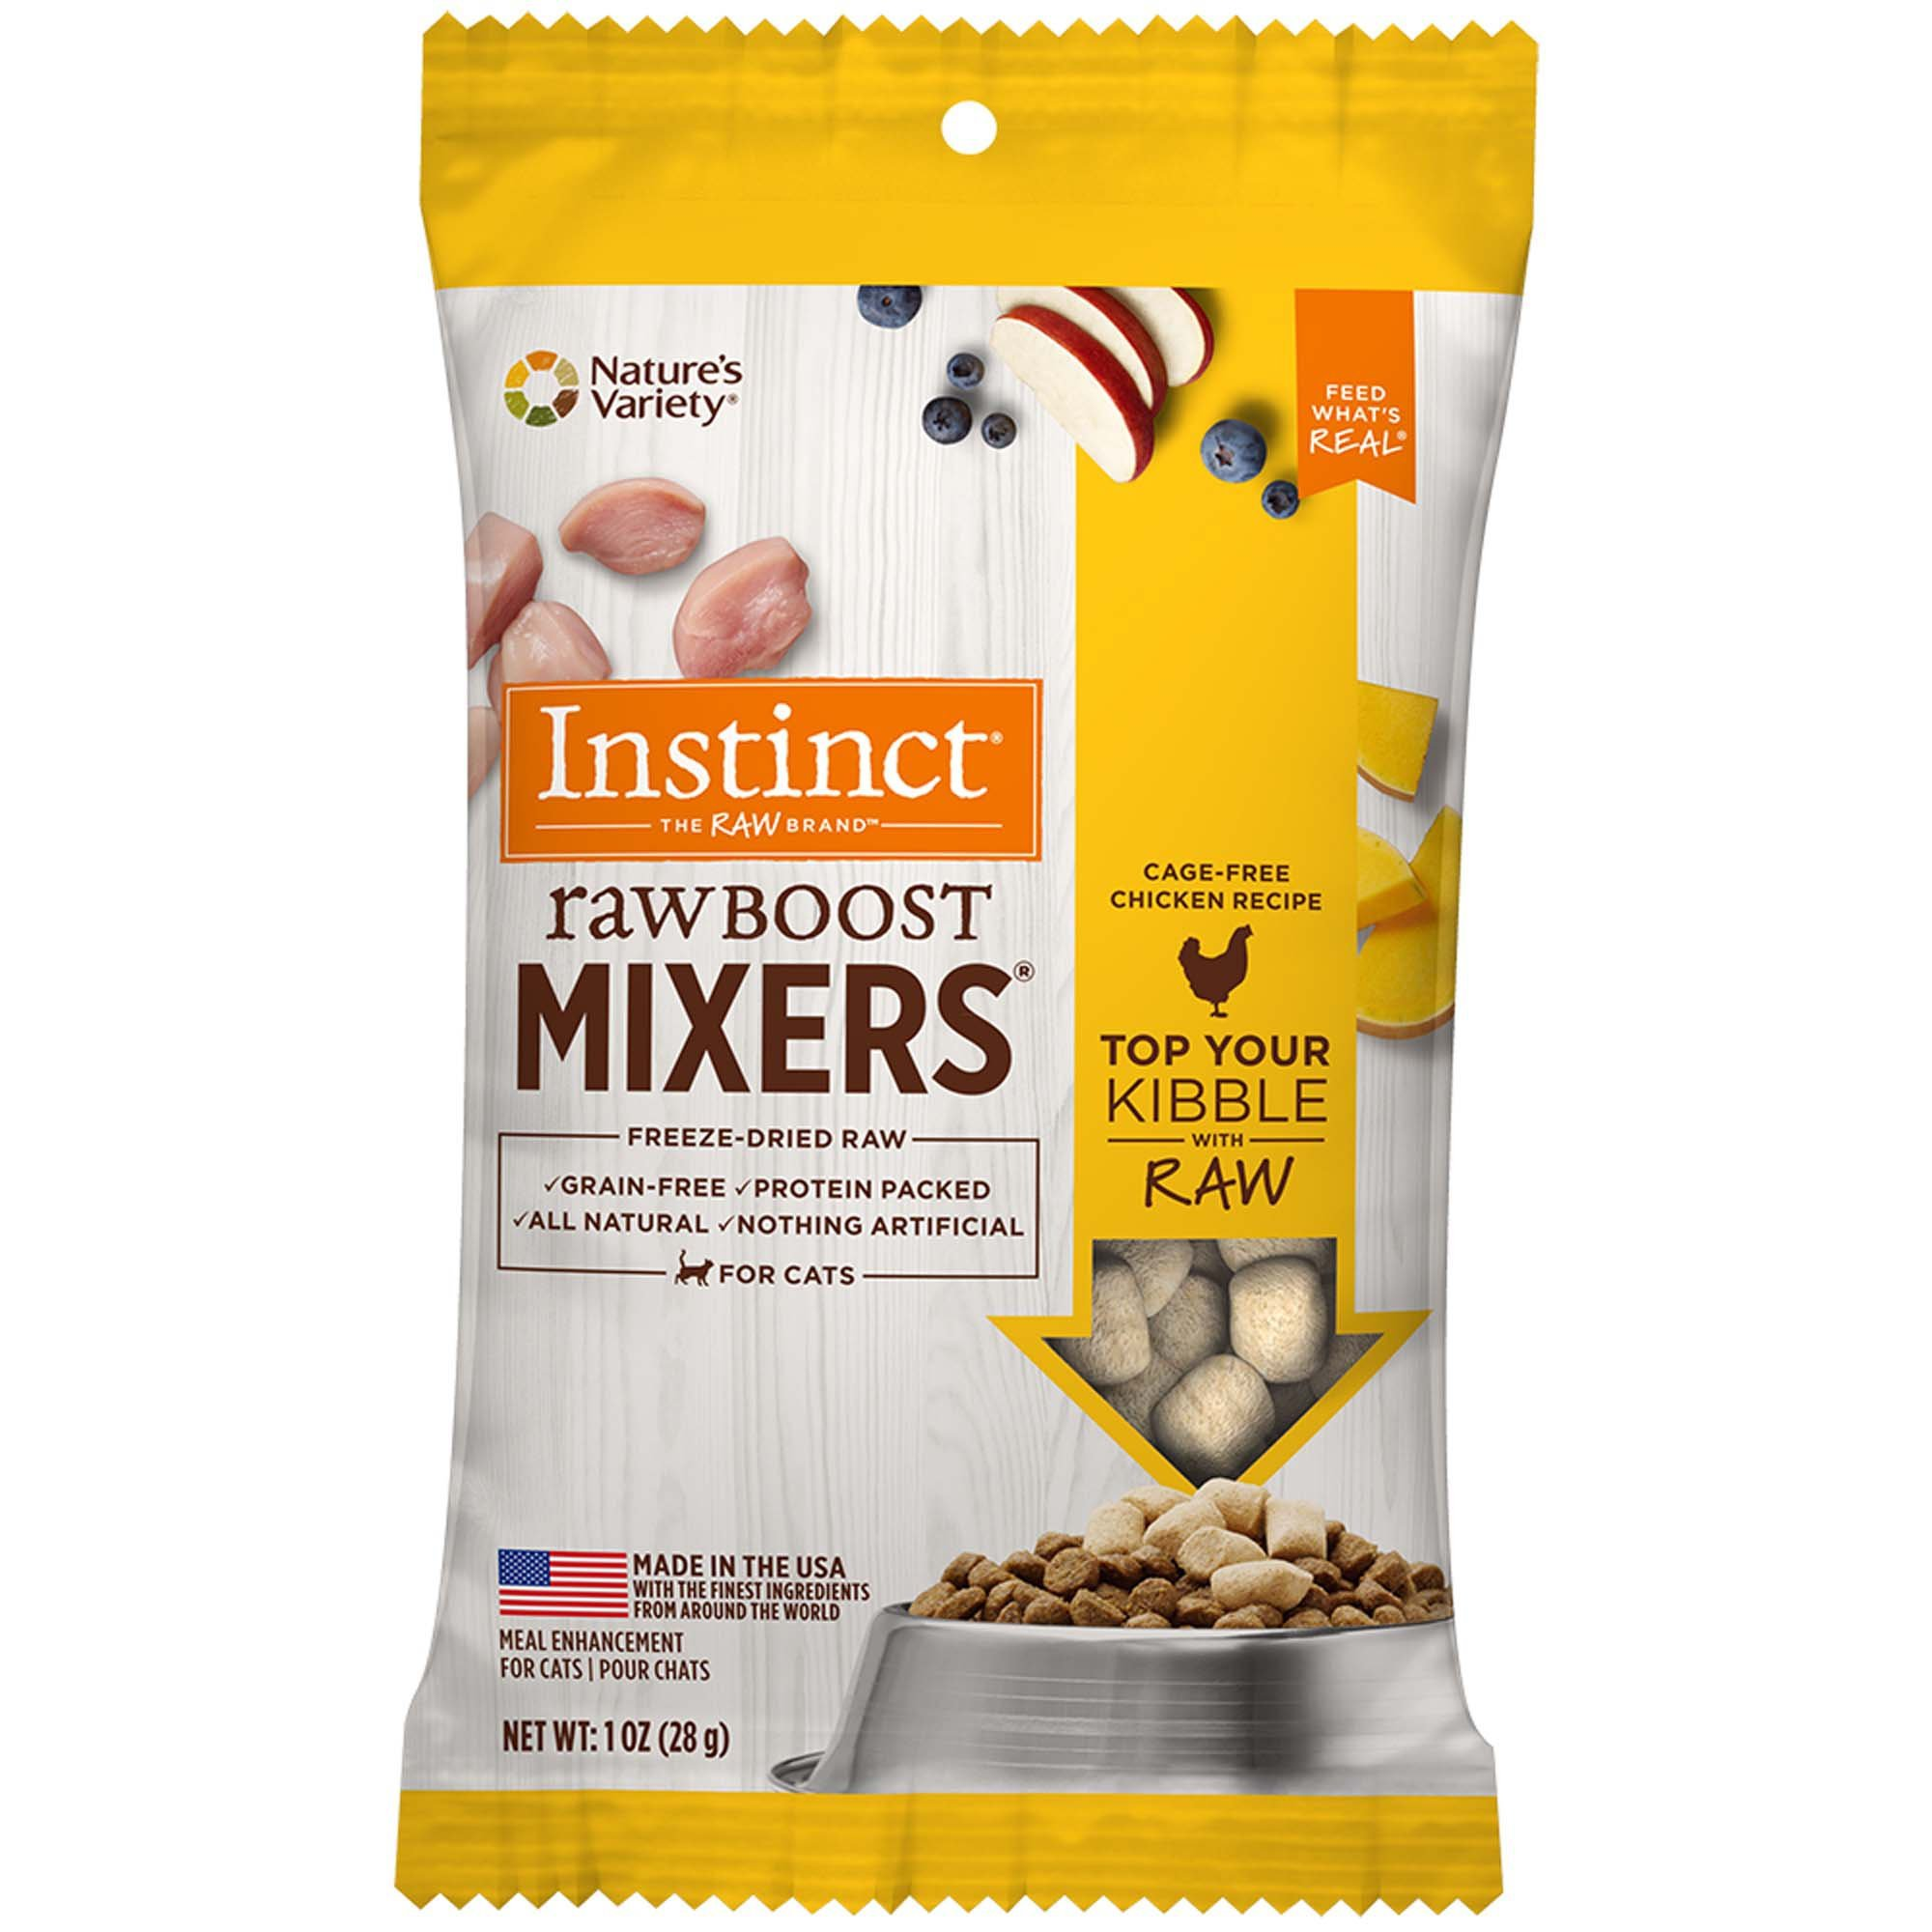 Instinct Freeze Dried Raw Boost Mixers Grain Free Chicken Formula All Natural Cat Food Topper By Nature'S Variety, 1 Oz. Trial Size Bag